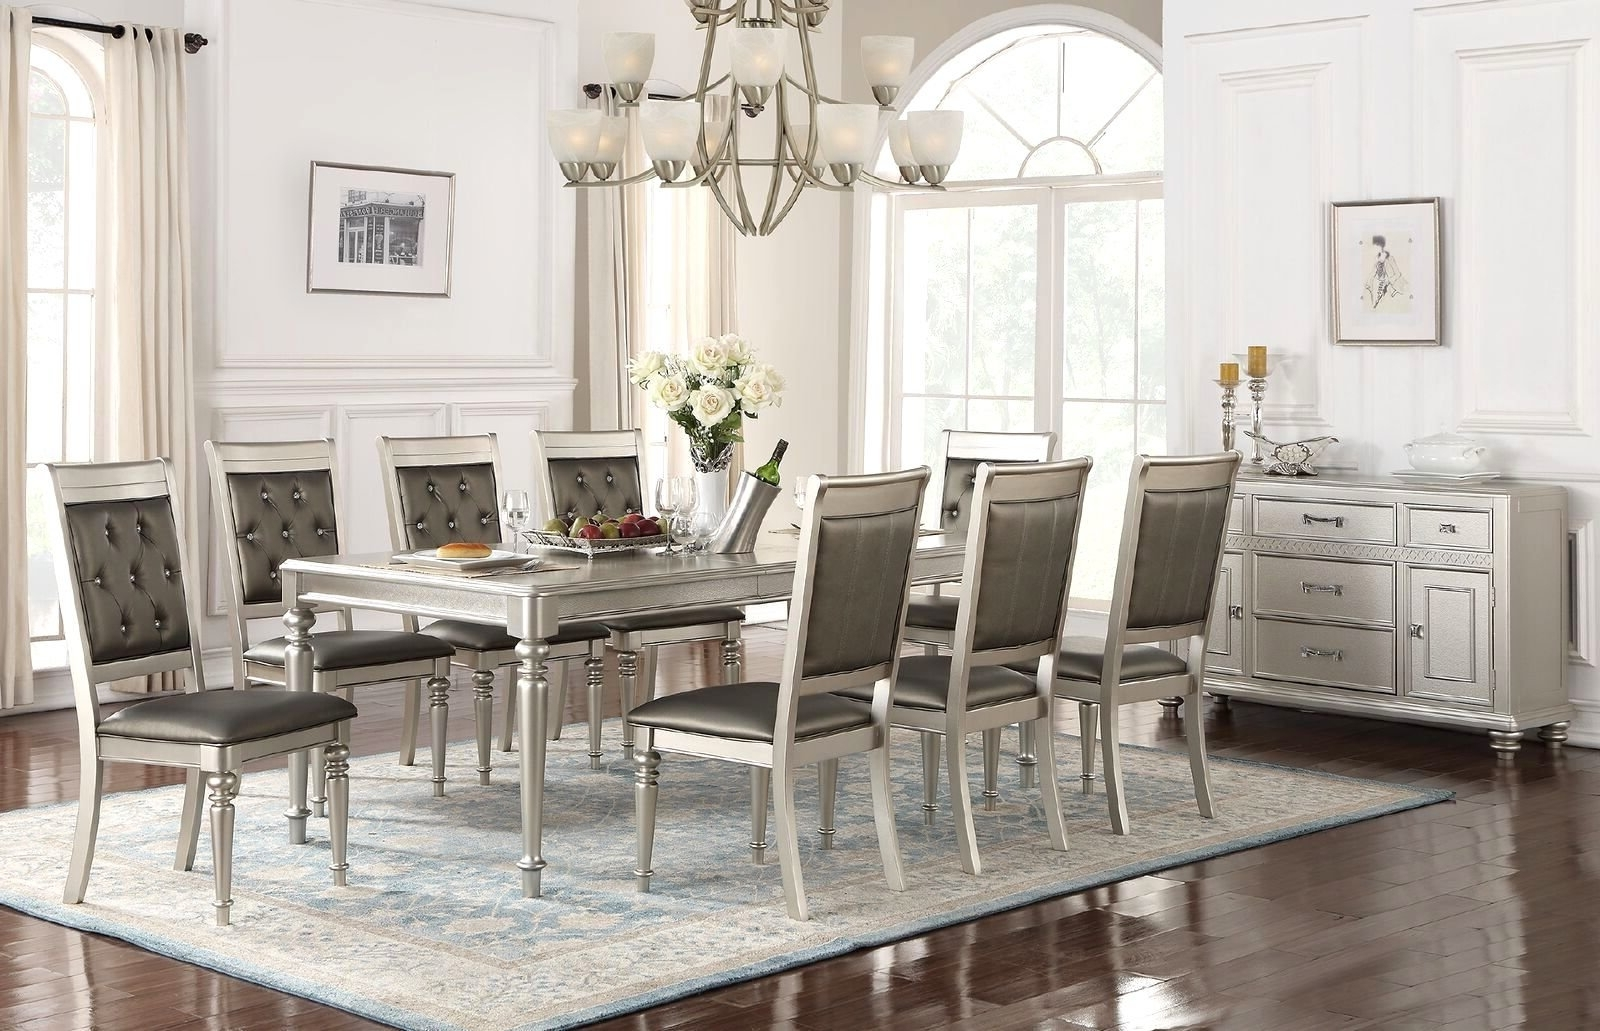 2017 9 Piece Dining Sets You'll Love (View 11 of 25)